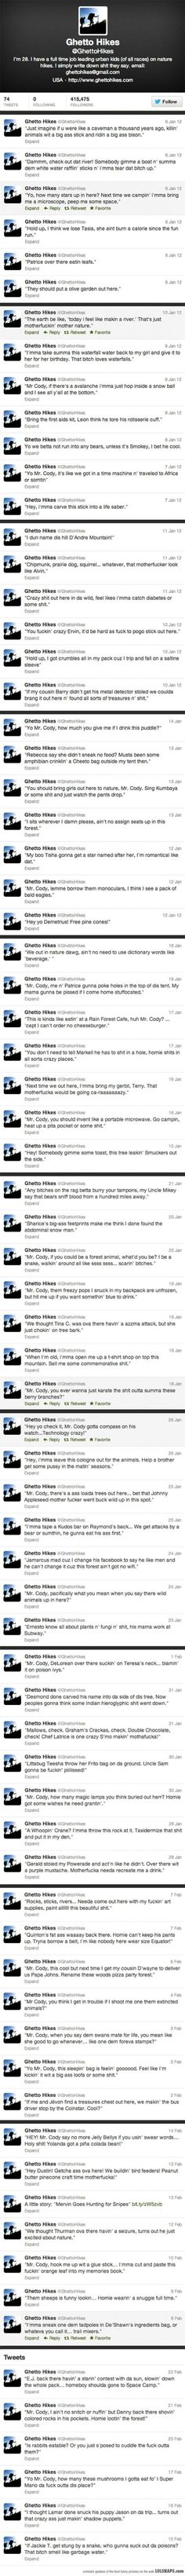 Ghetto hikes-a guy who takes inner city kids on hikes and simply tweets exactly what they say.: